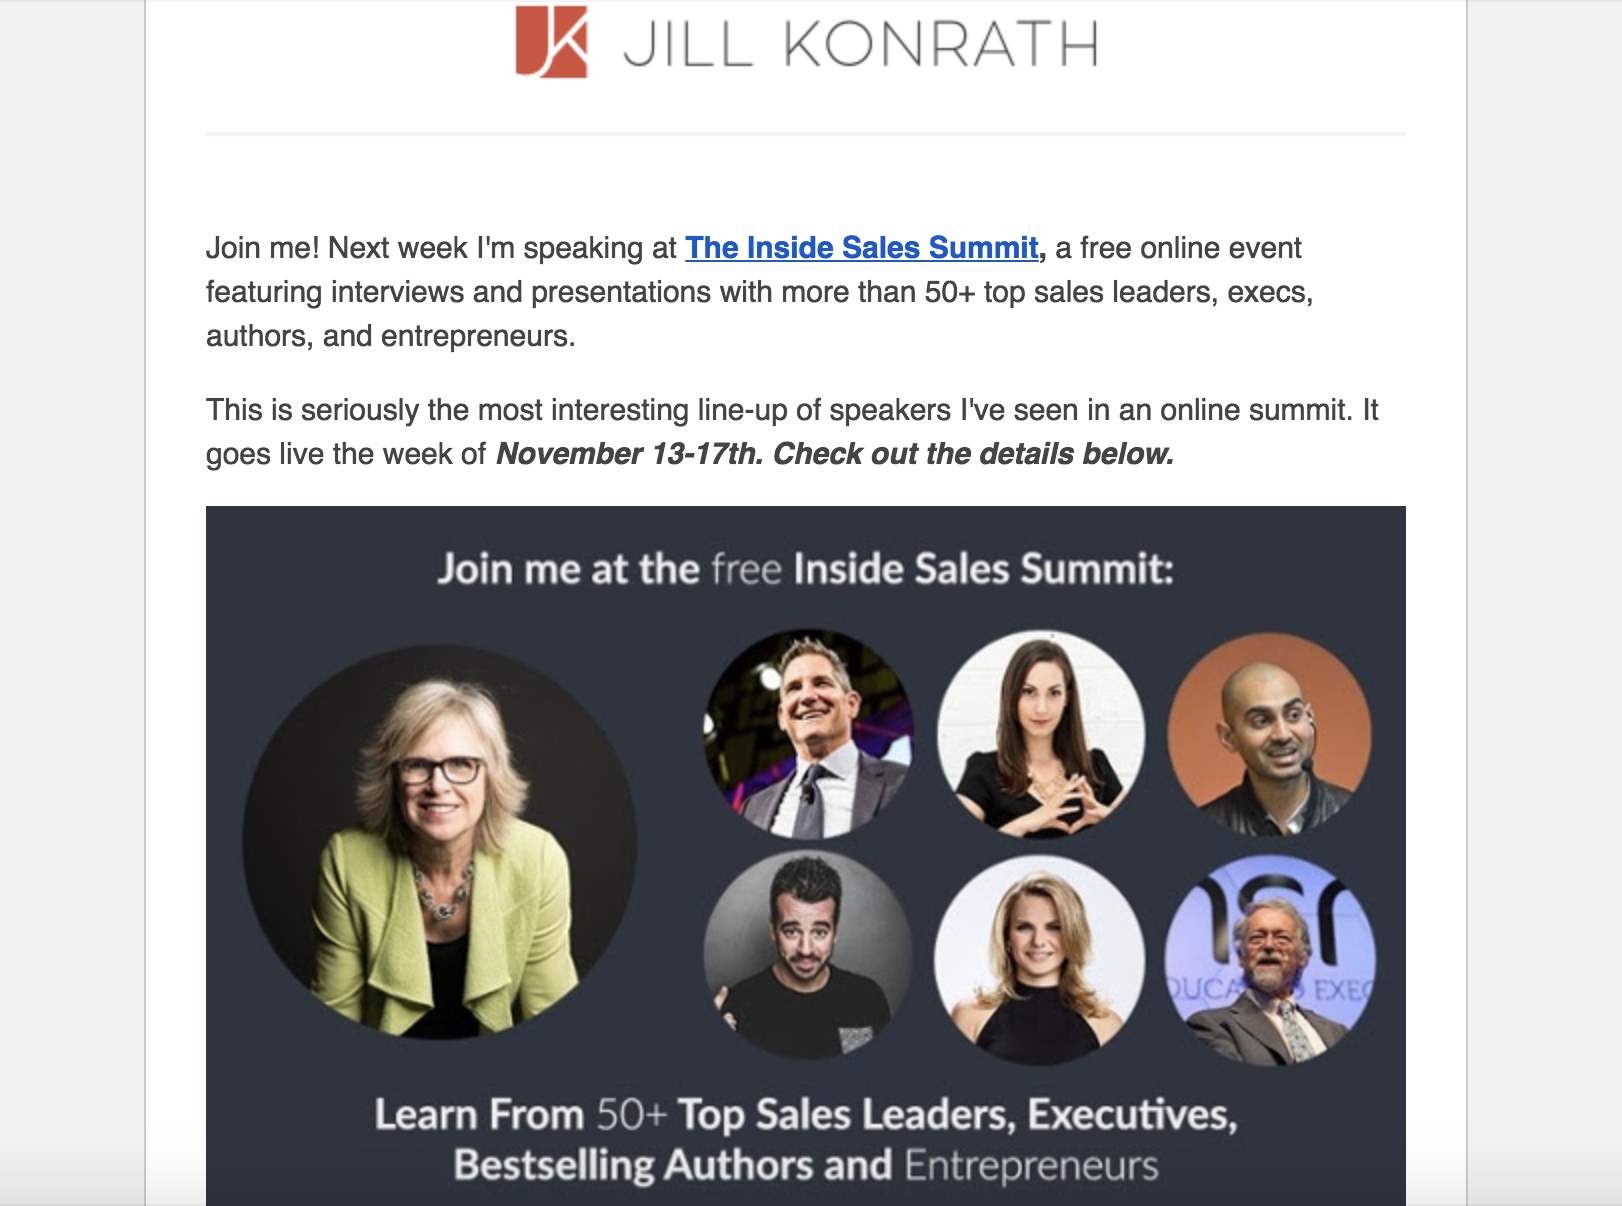 launch virtual summit jill konrath email.png